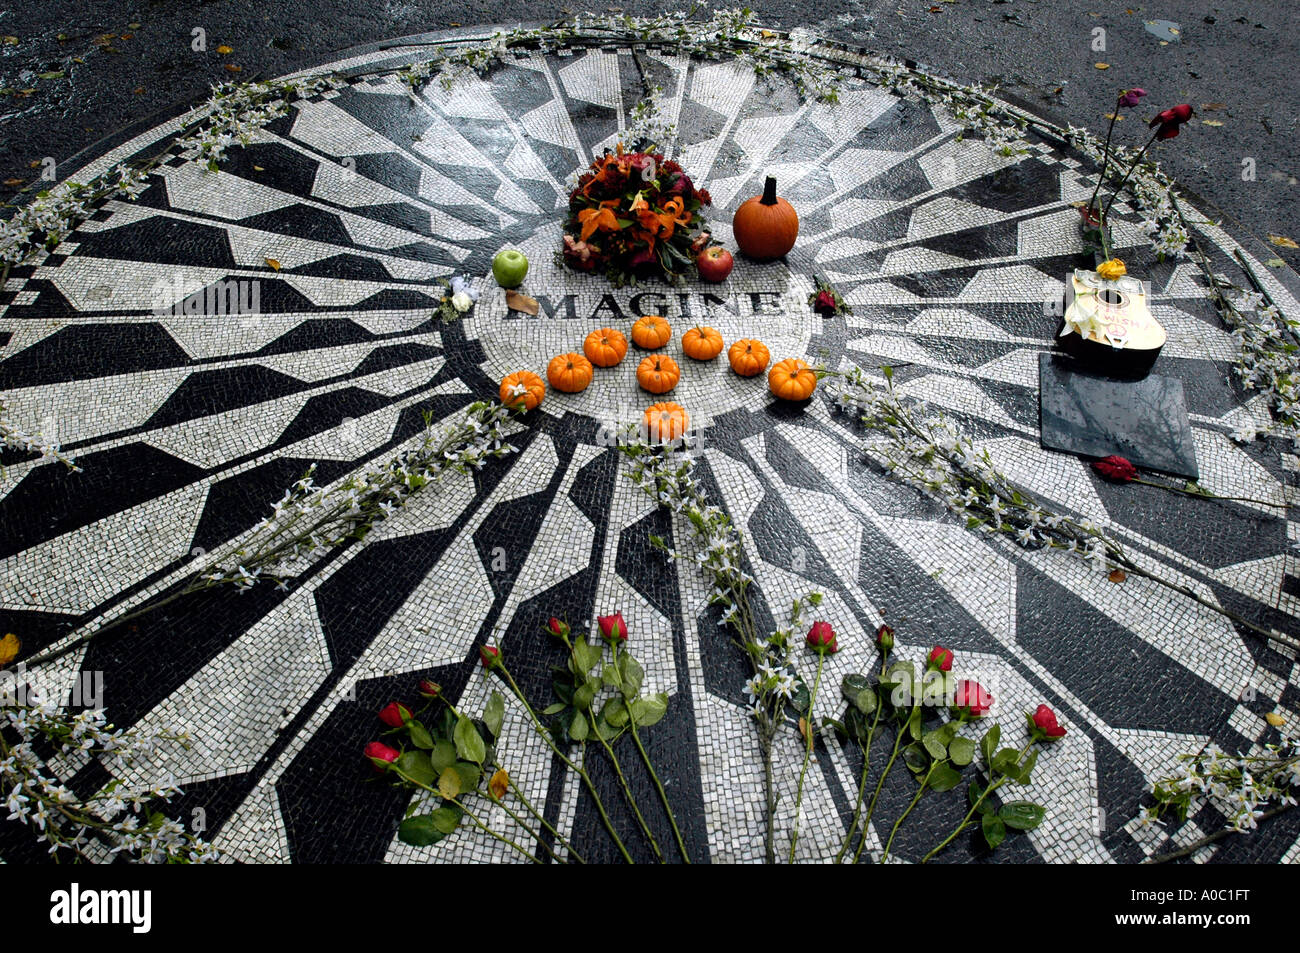 The Imagine mosaic in Strawberry Fields memorializing John Lennon in Central Park in the autumn - Stock Image